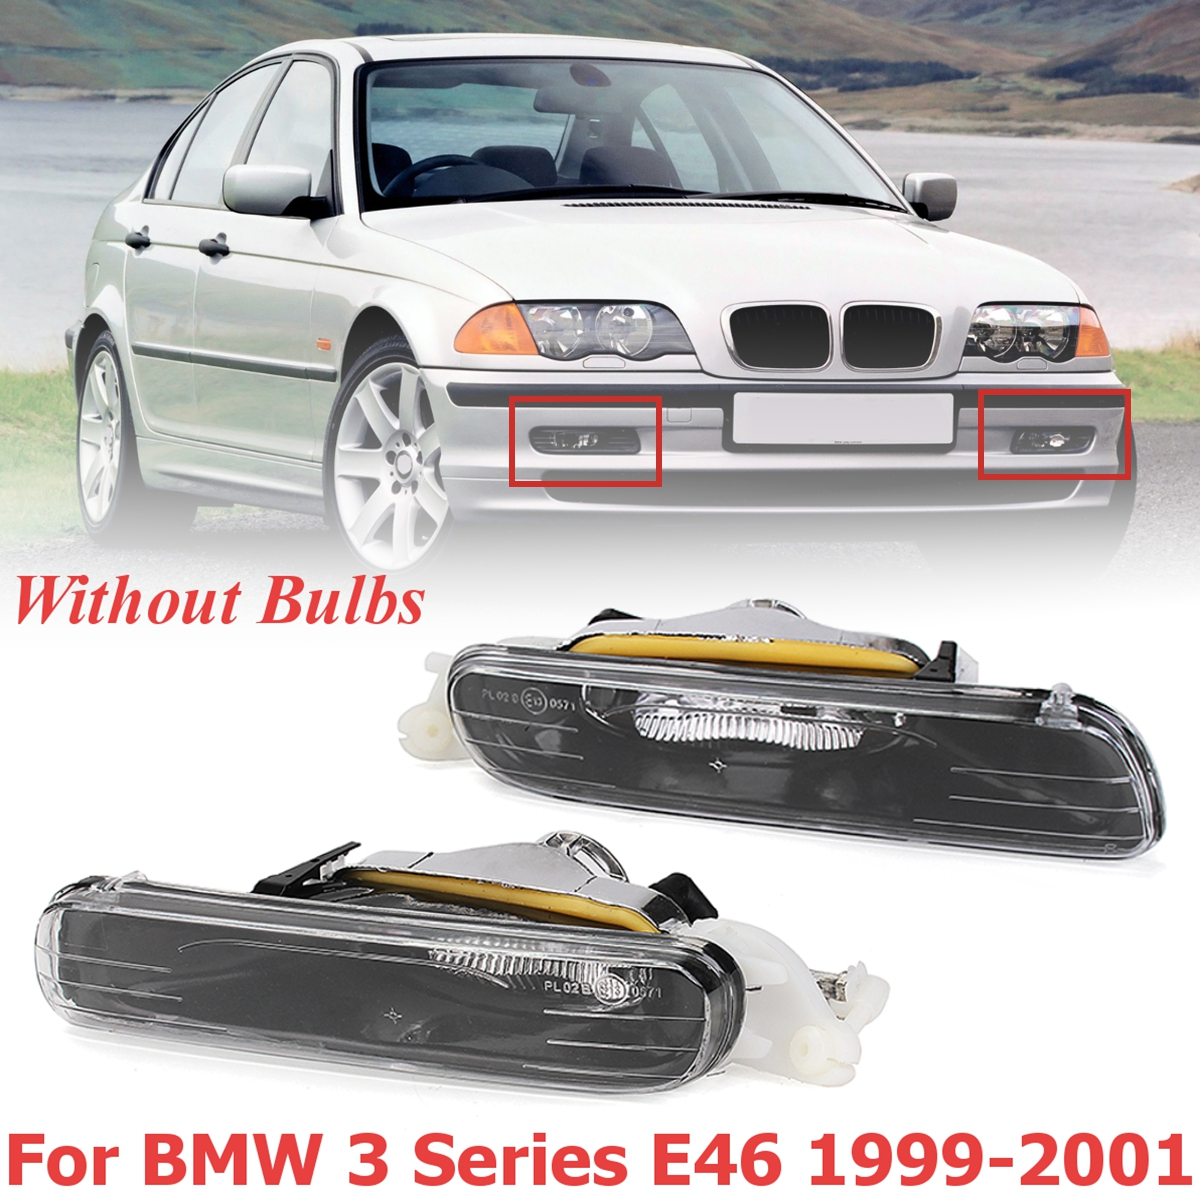 for BMW 3 Series E46 1999 2000 2001 1 Pair Front Bumper Halogen Fog Lights Lamps Without Bulb Car Styling Replacment fit for 04 05 06 07 08 bmw e60 5 series fog lights front lamps clear lens pair set usa domestic free shipping